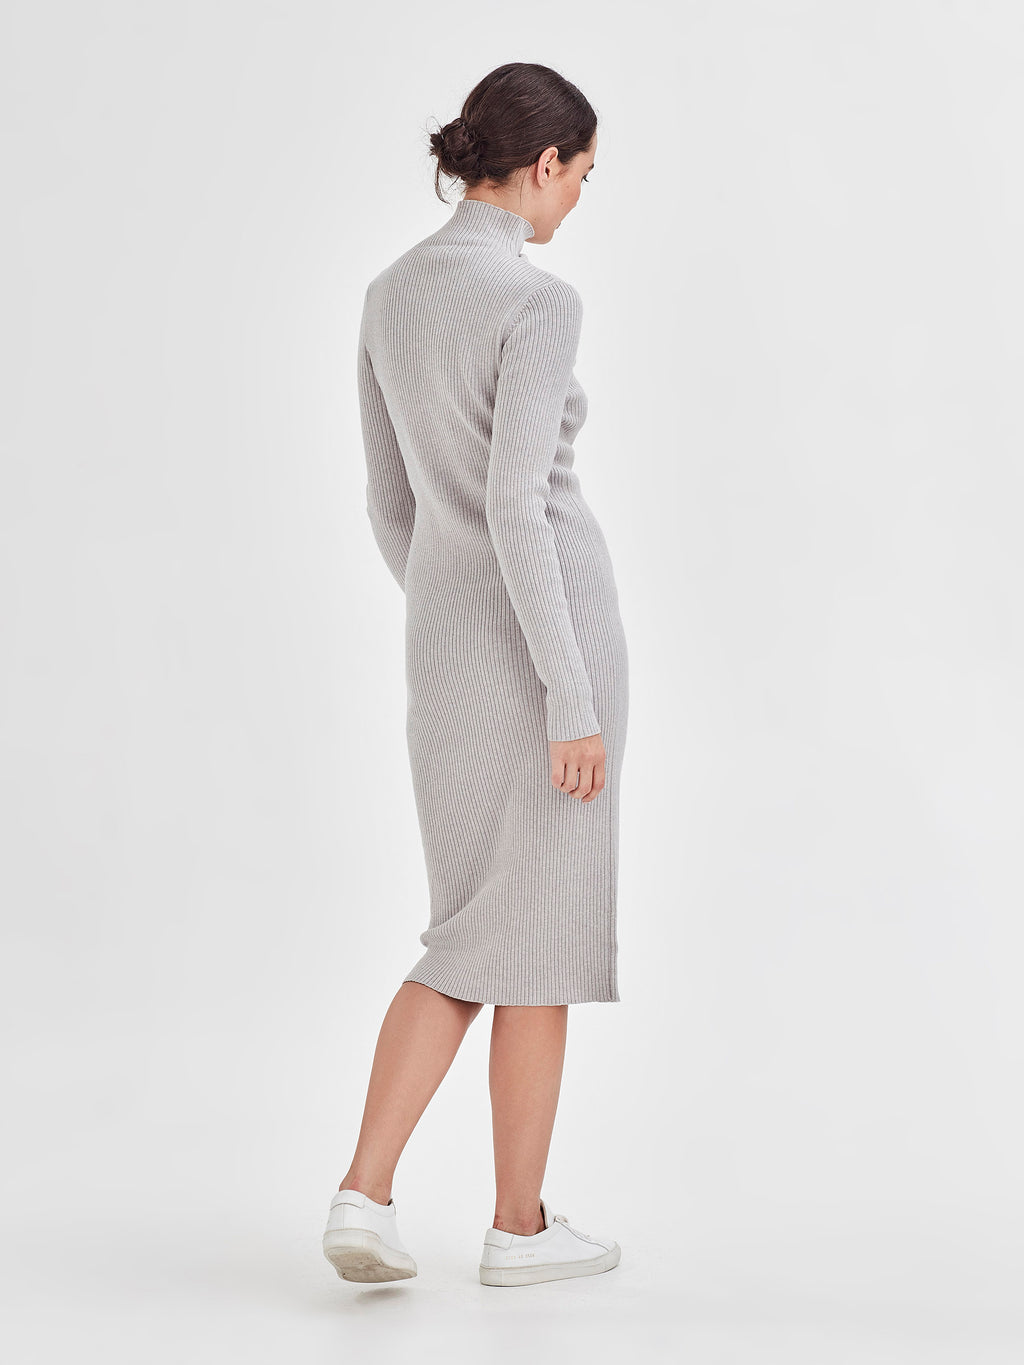 Apres Rib Dress (Cotton Cash Rib) Ash